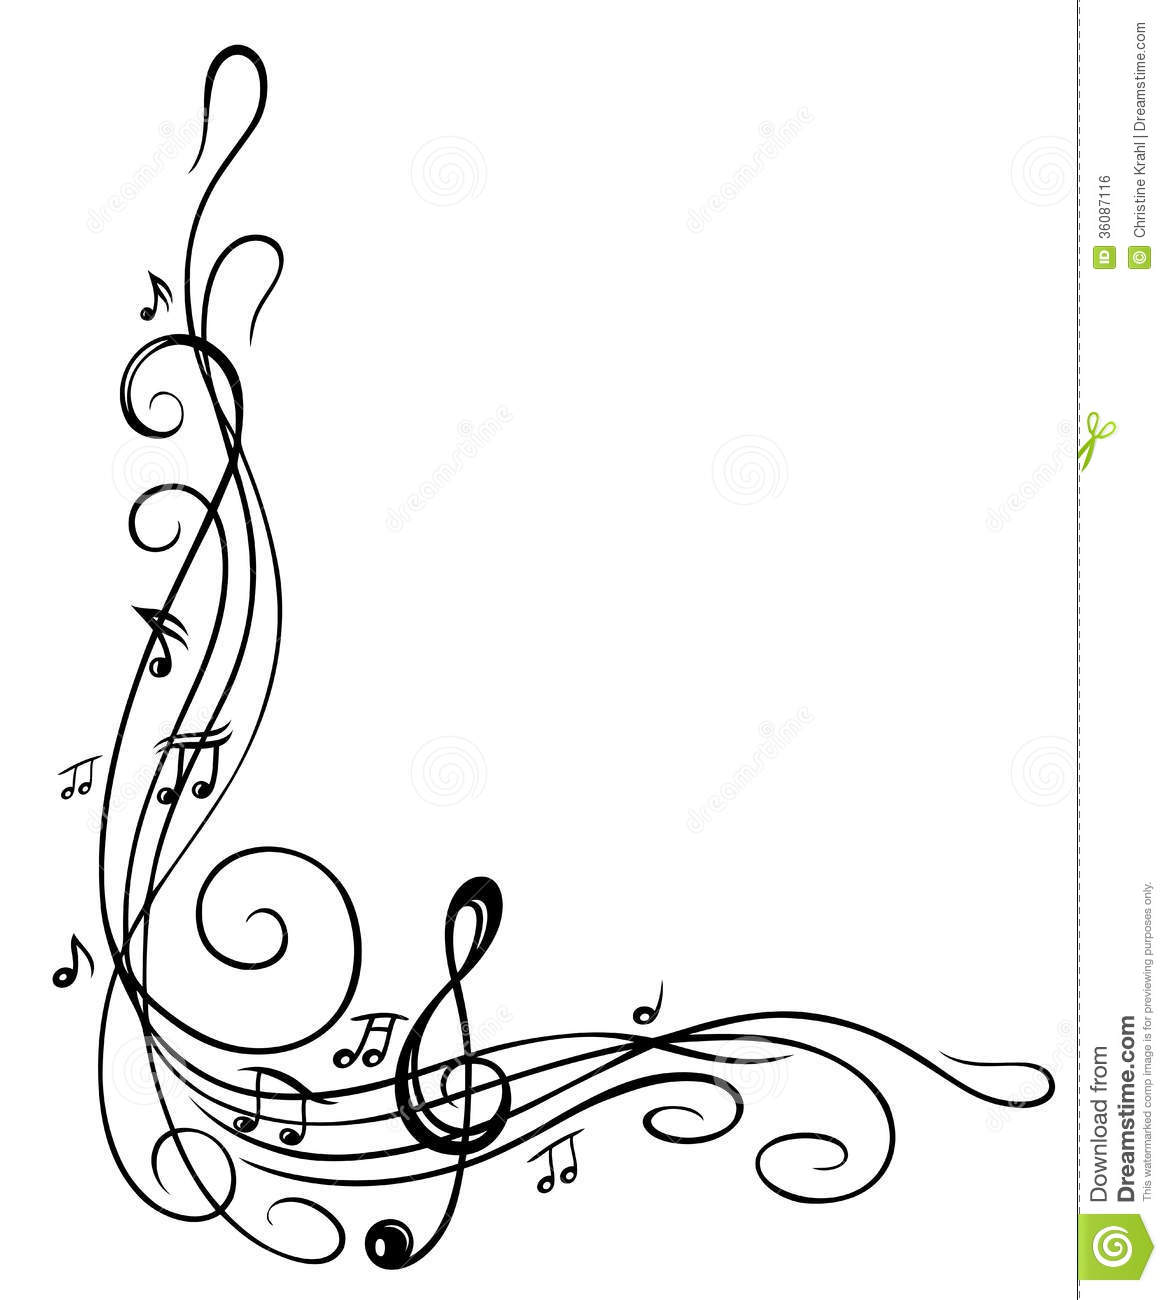 Free clipart background patterns music notes clip art freeuse download Musical Note 3 Clip Art ...site to print out free music notes for ... clip art freeuse download